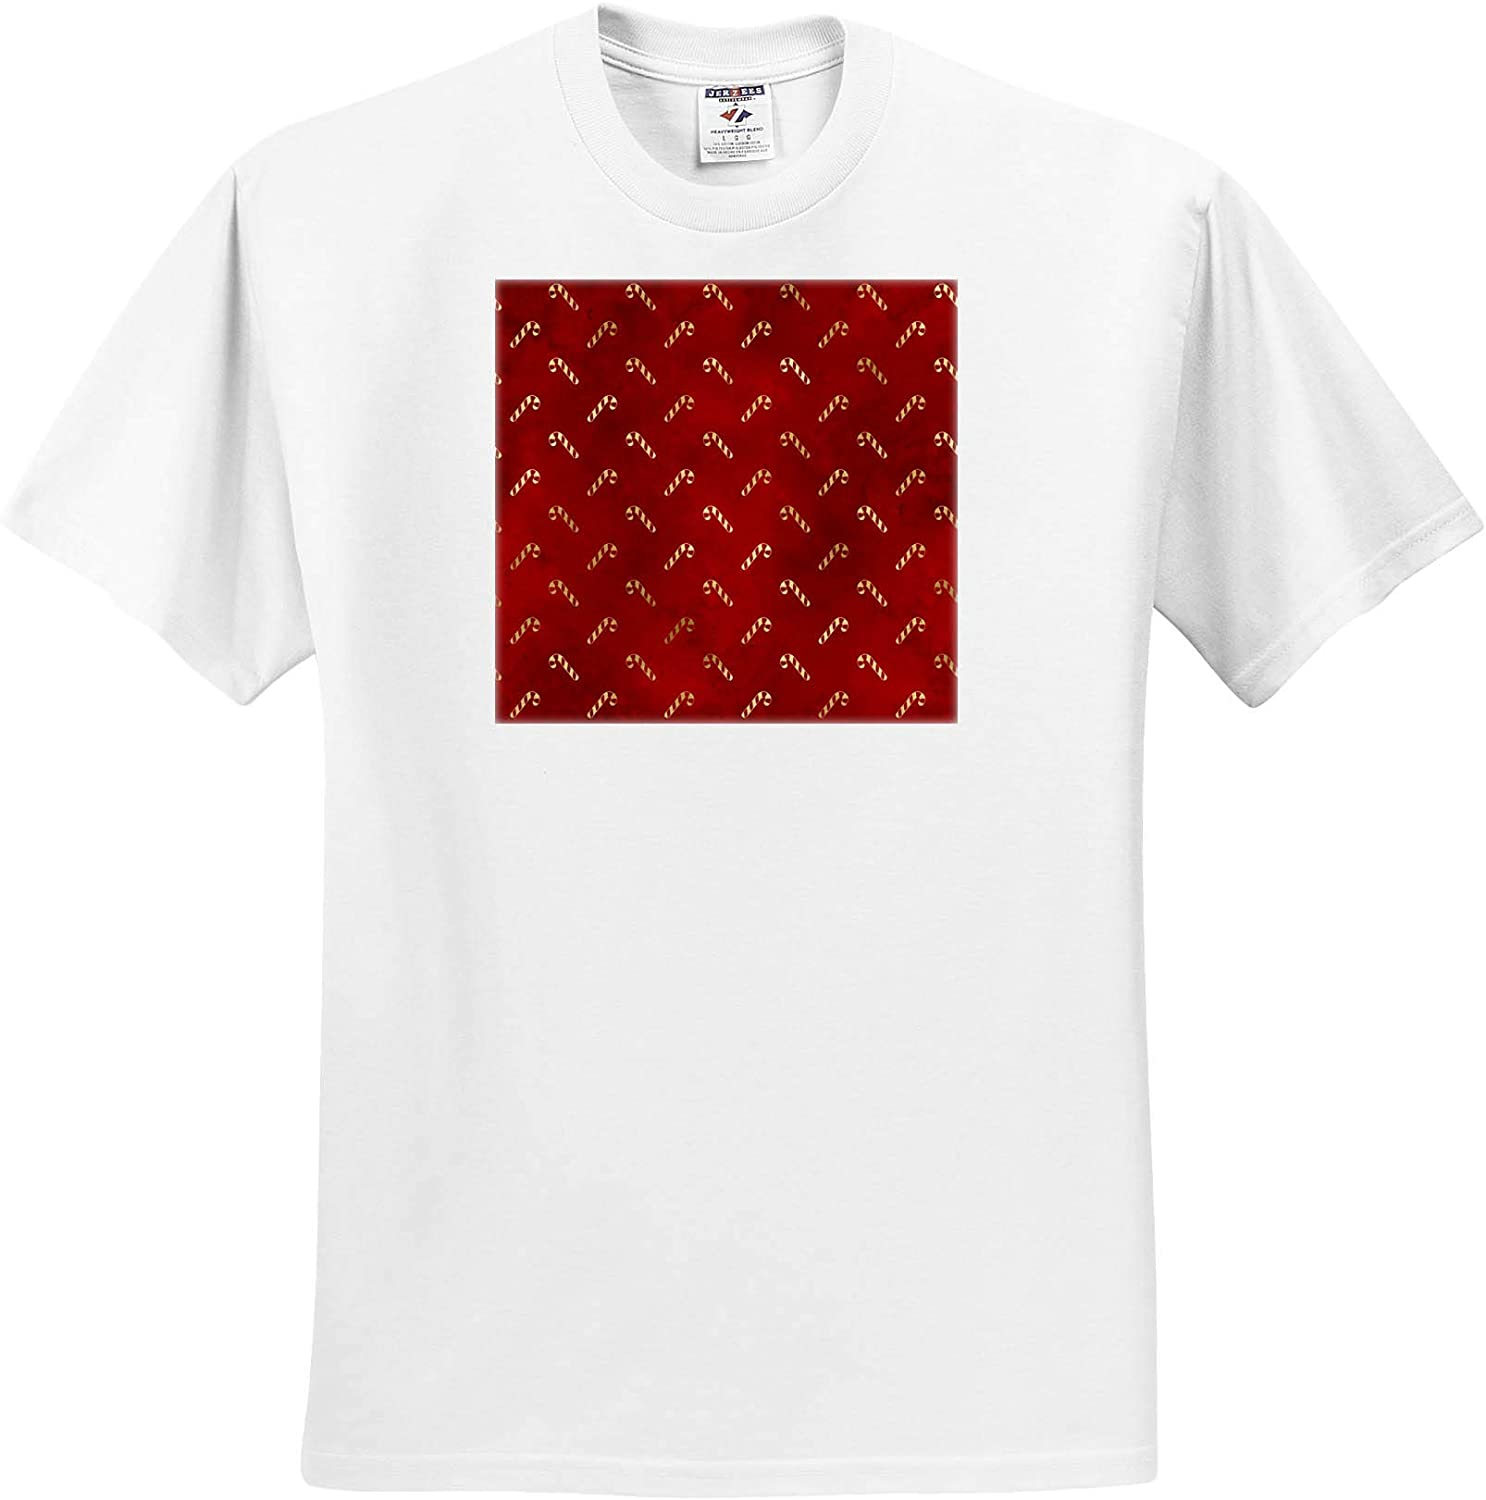 3dRose Cute Image of Gold and Red Candy Cane Pattern - T-Shirts (ts_328168)